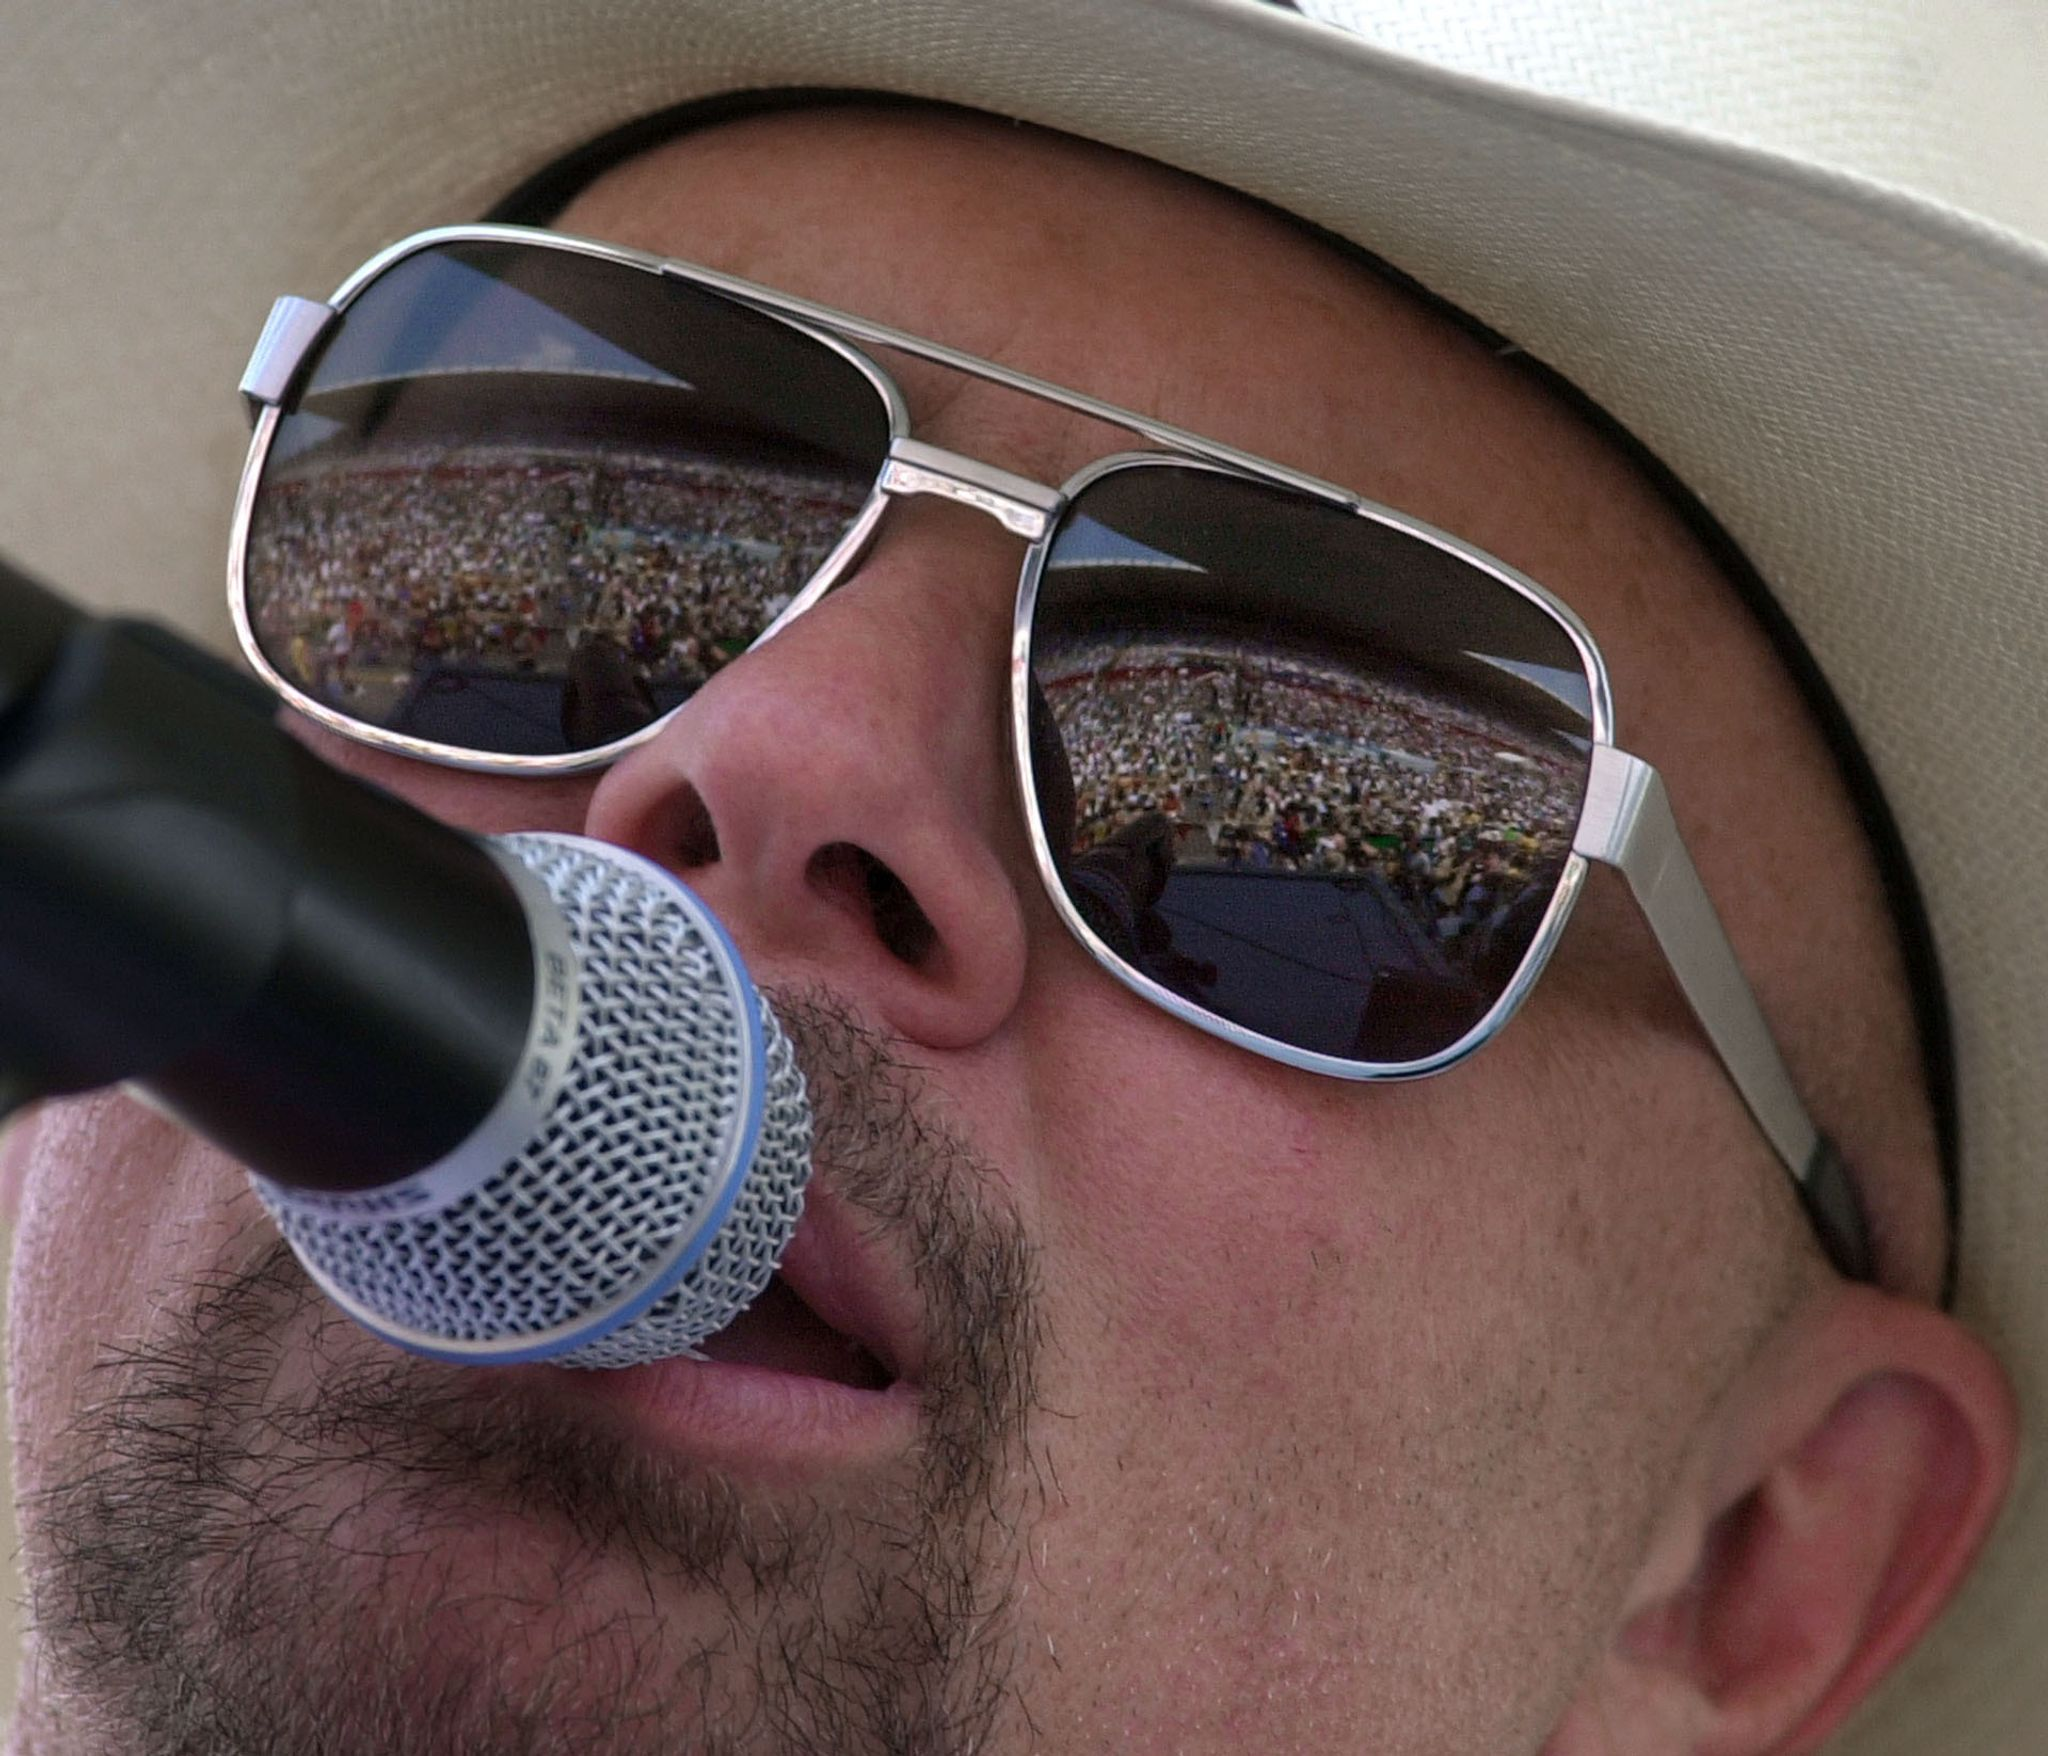 Confederate Railroad booted from Illinois state fair gig over 'symbols of racism'